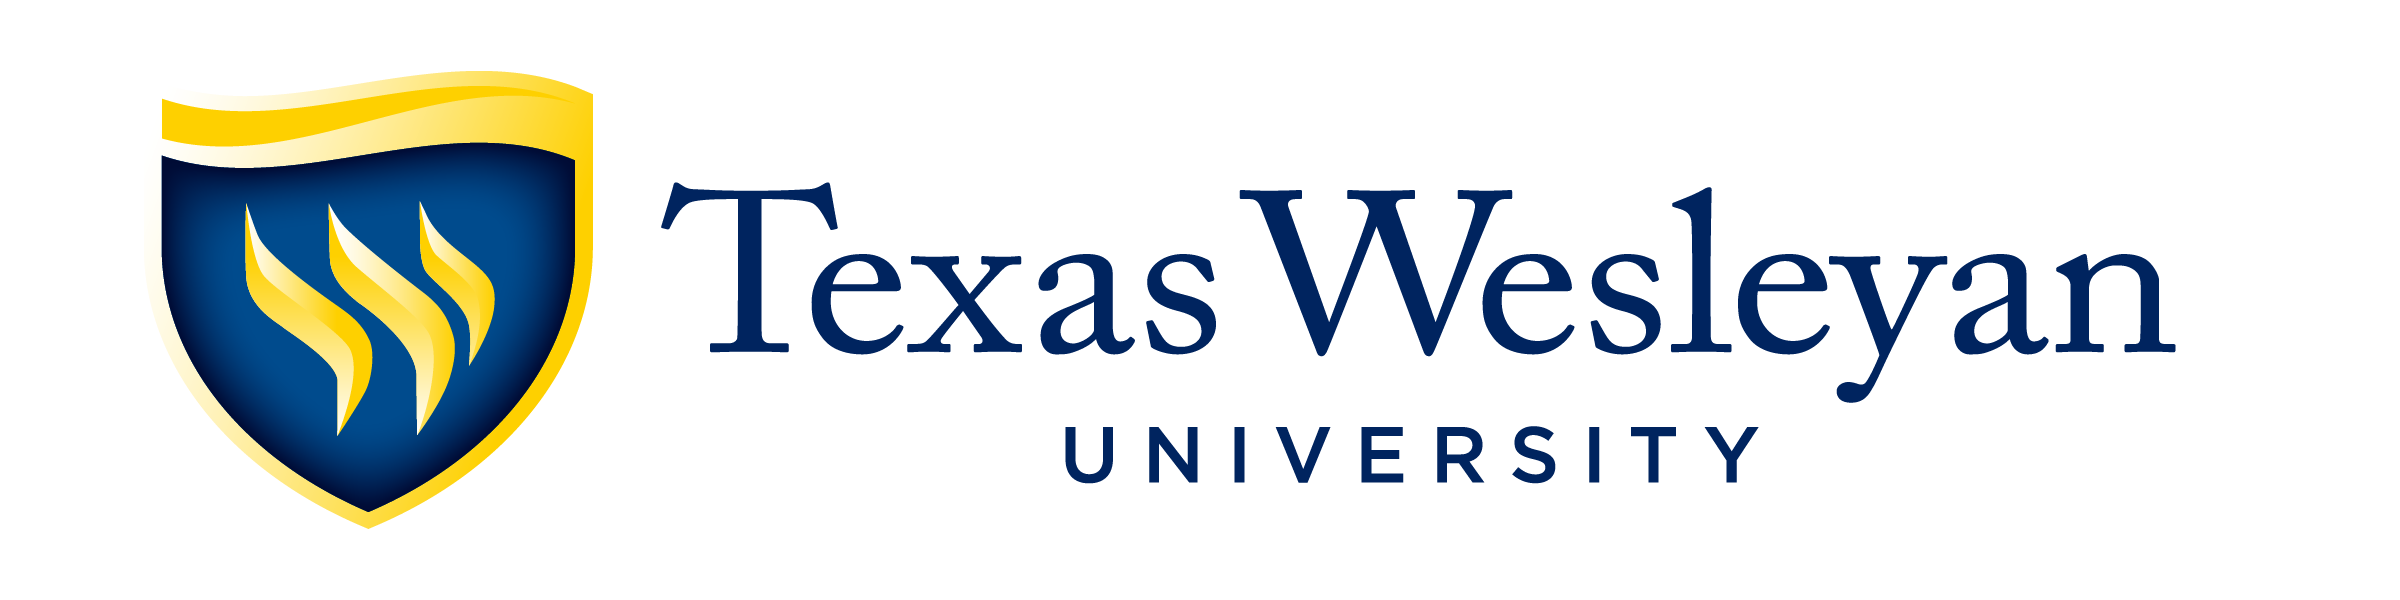 Texas Wesleyan University website